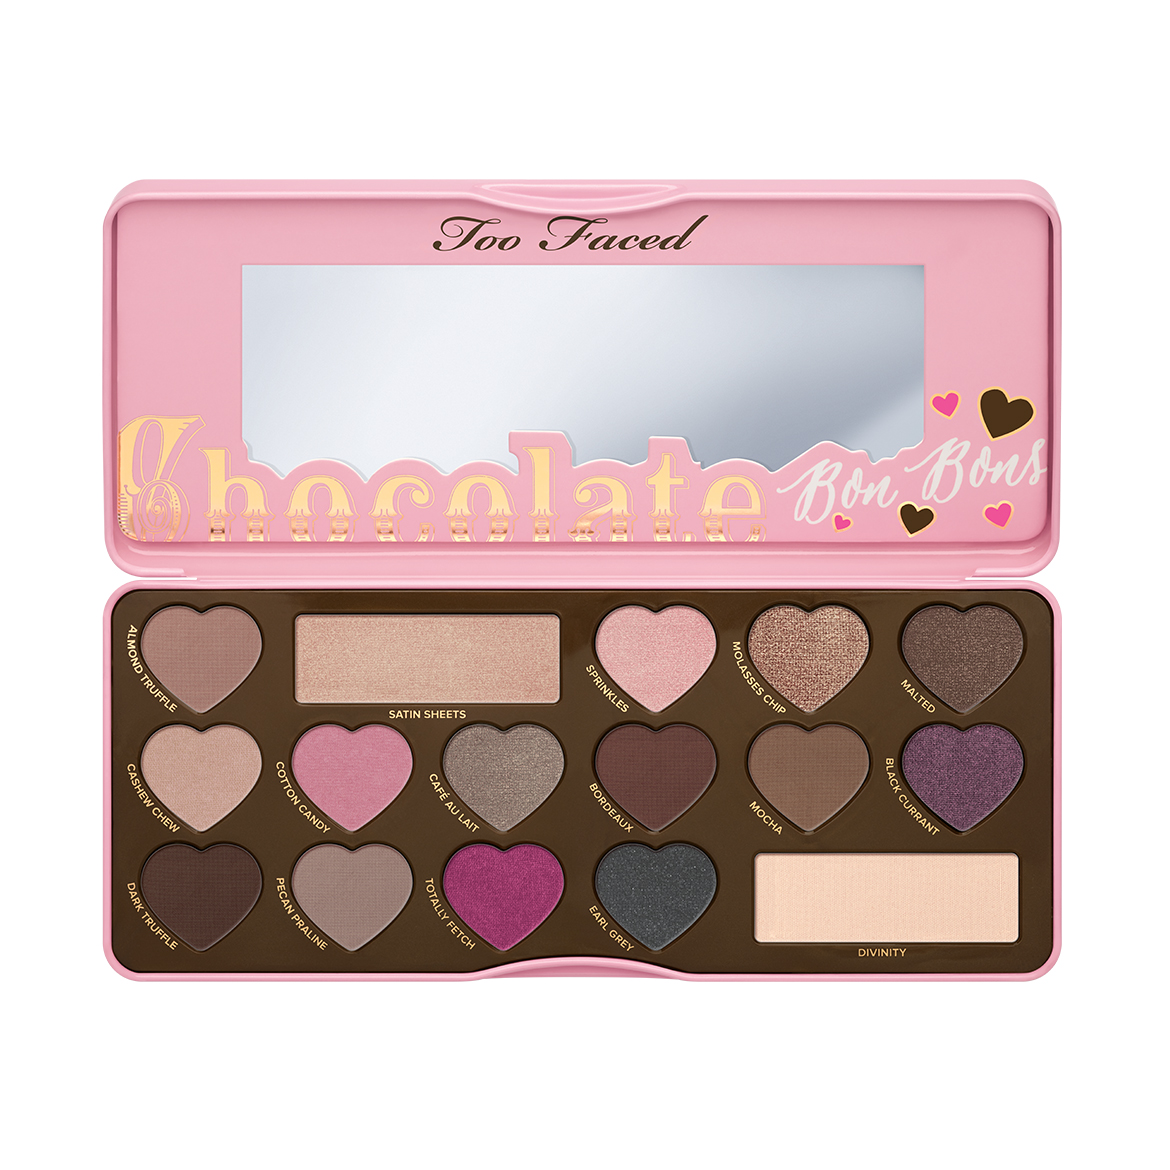 Too Face Chocolate Bon Bons Eyeshadow Palette